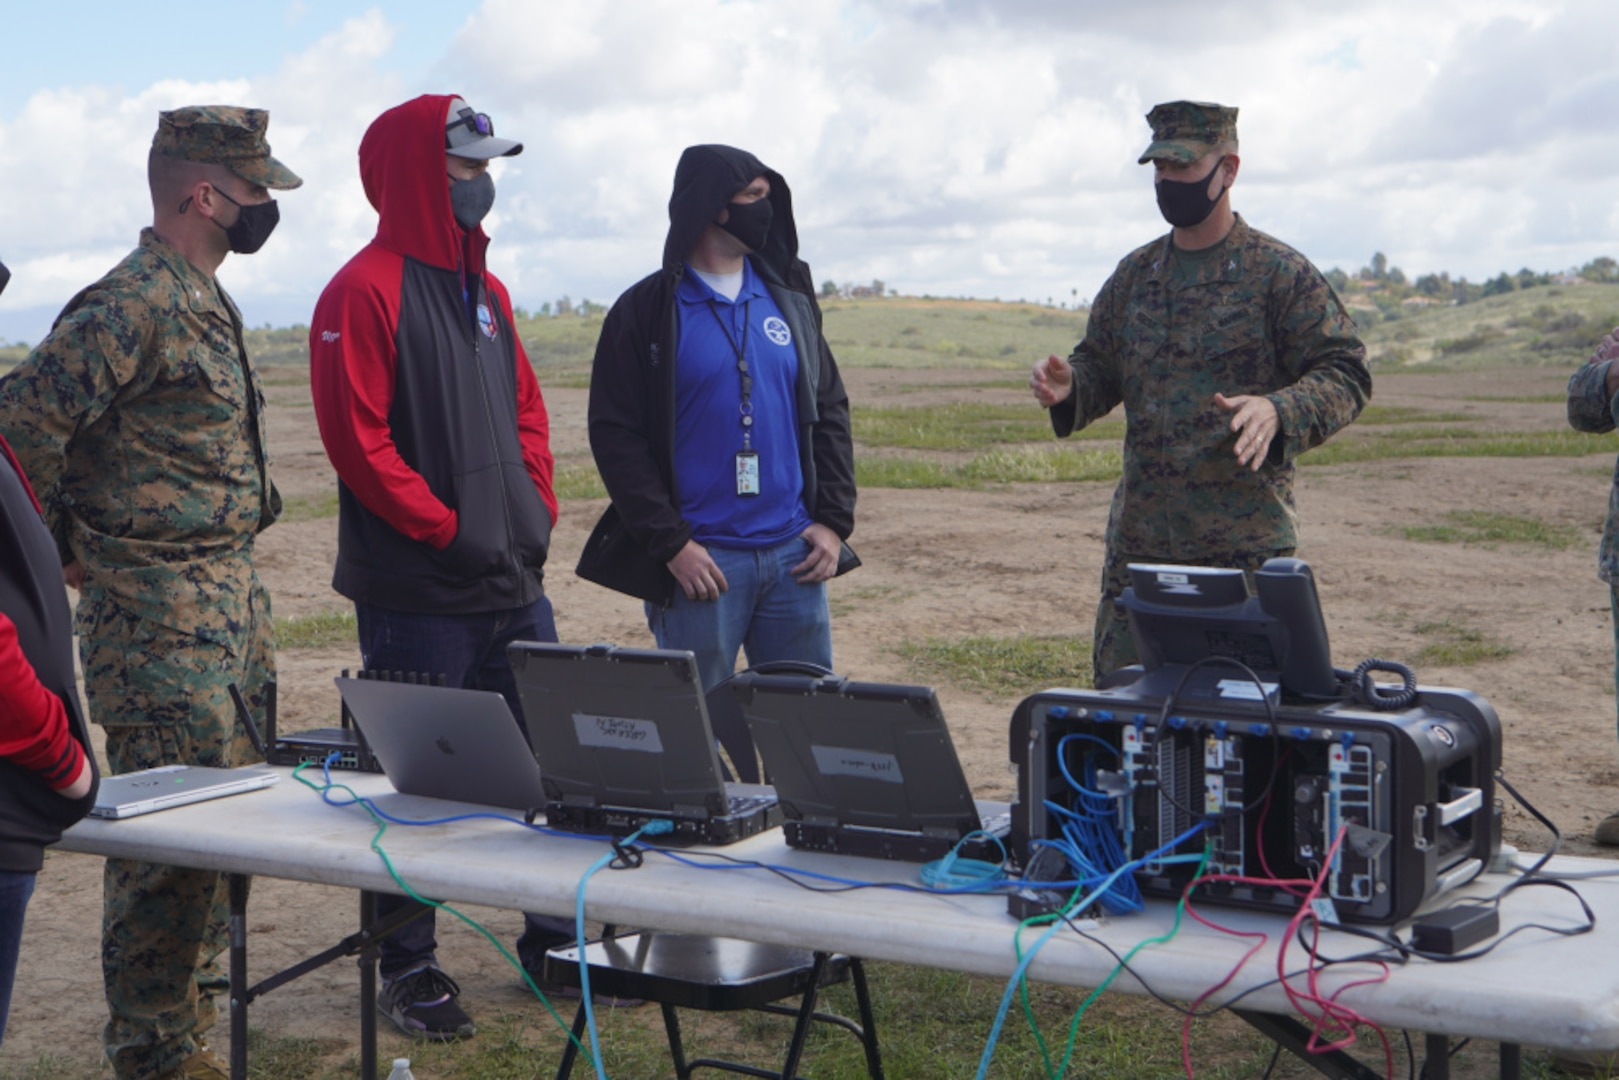 U.S. Marine Corps Col. Brian Rideout (right), discusses the vision for the Cloud Layered Obfuscation Application Kit during a practical exercise at Marine Corps Base Camp Pendleton, California, March 9.